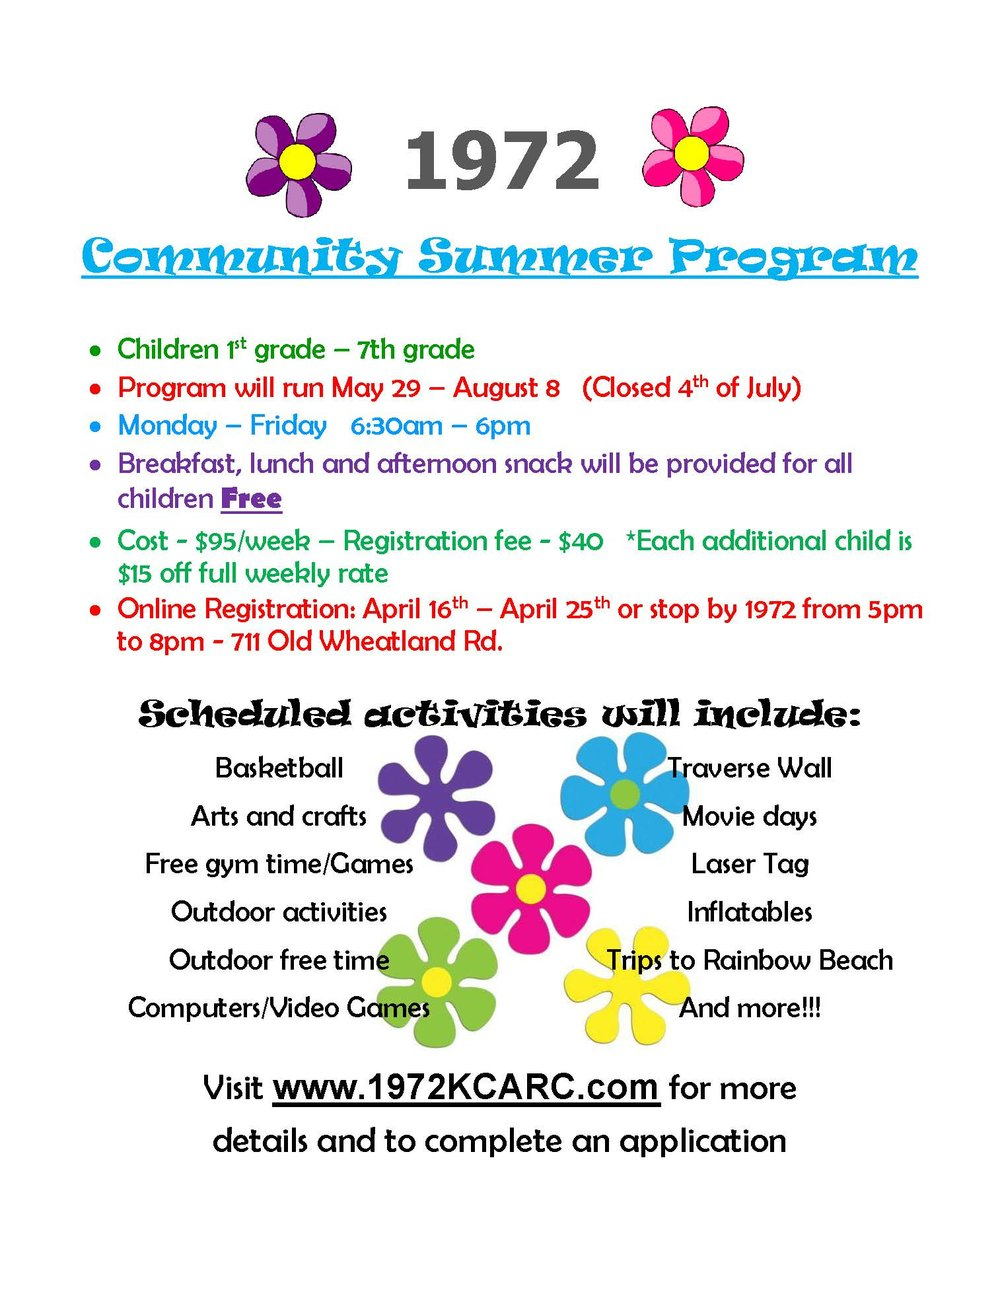 1972 Summer Program flier.jpg